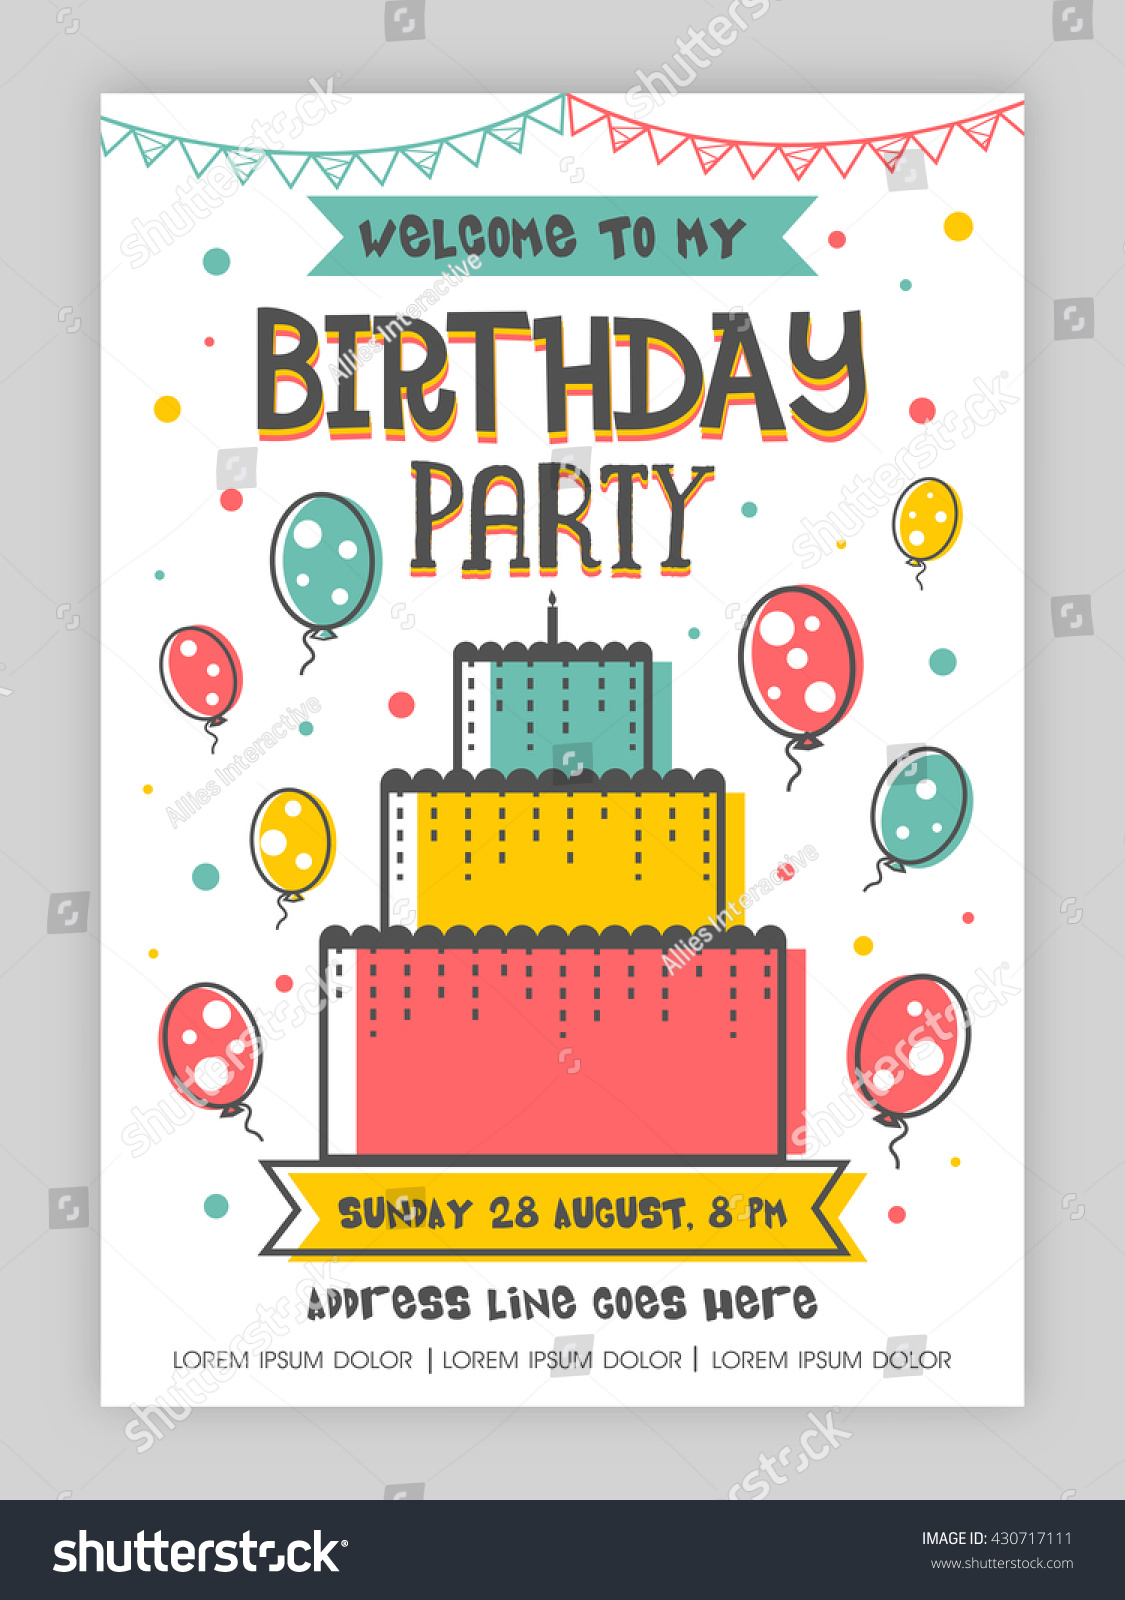 Birthday Party Invitation Card Welcome Card Stock Vector HD (Royalty ...